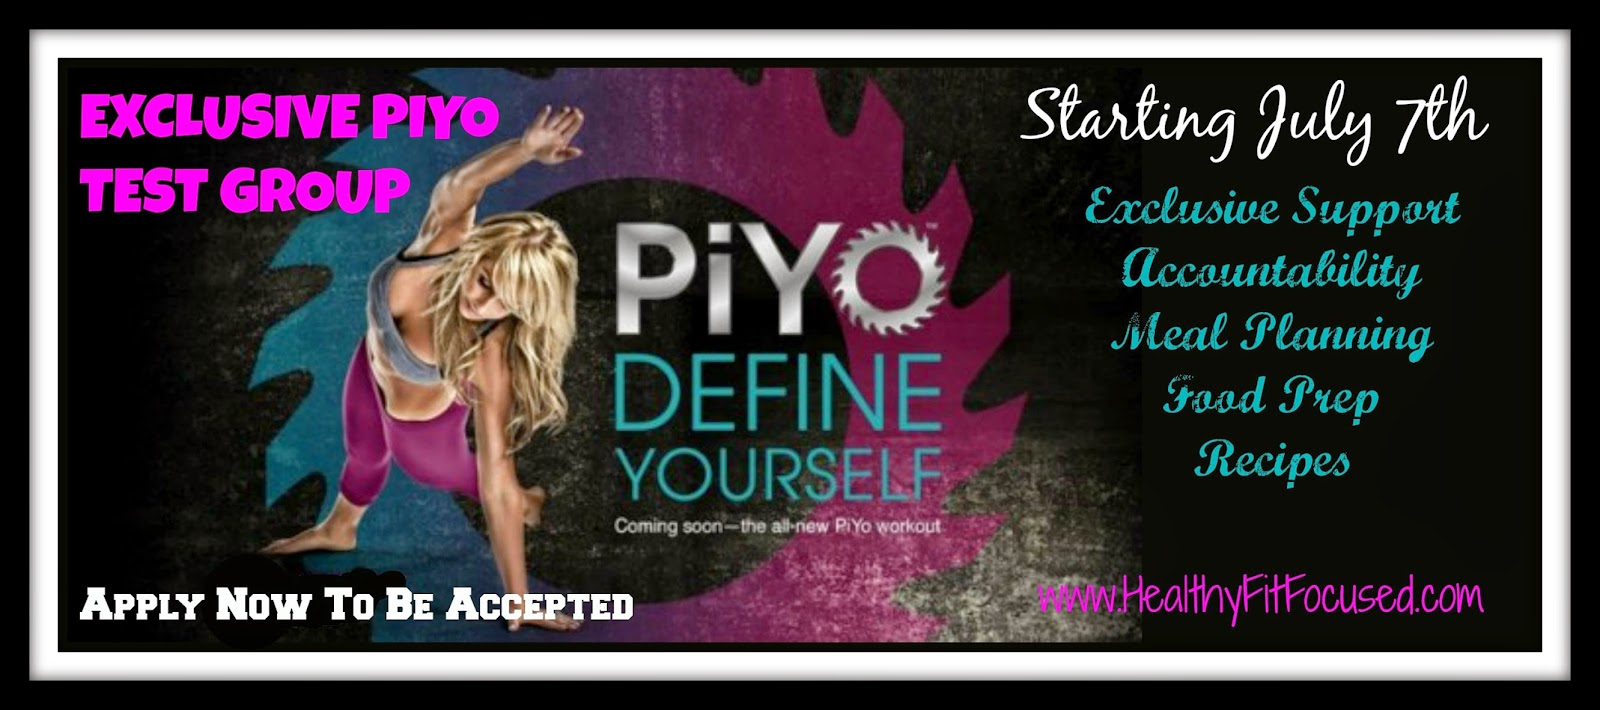 Piyo test group, Exclusive Piyo Test Group